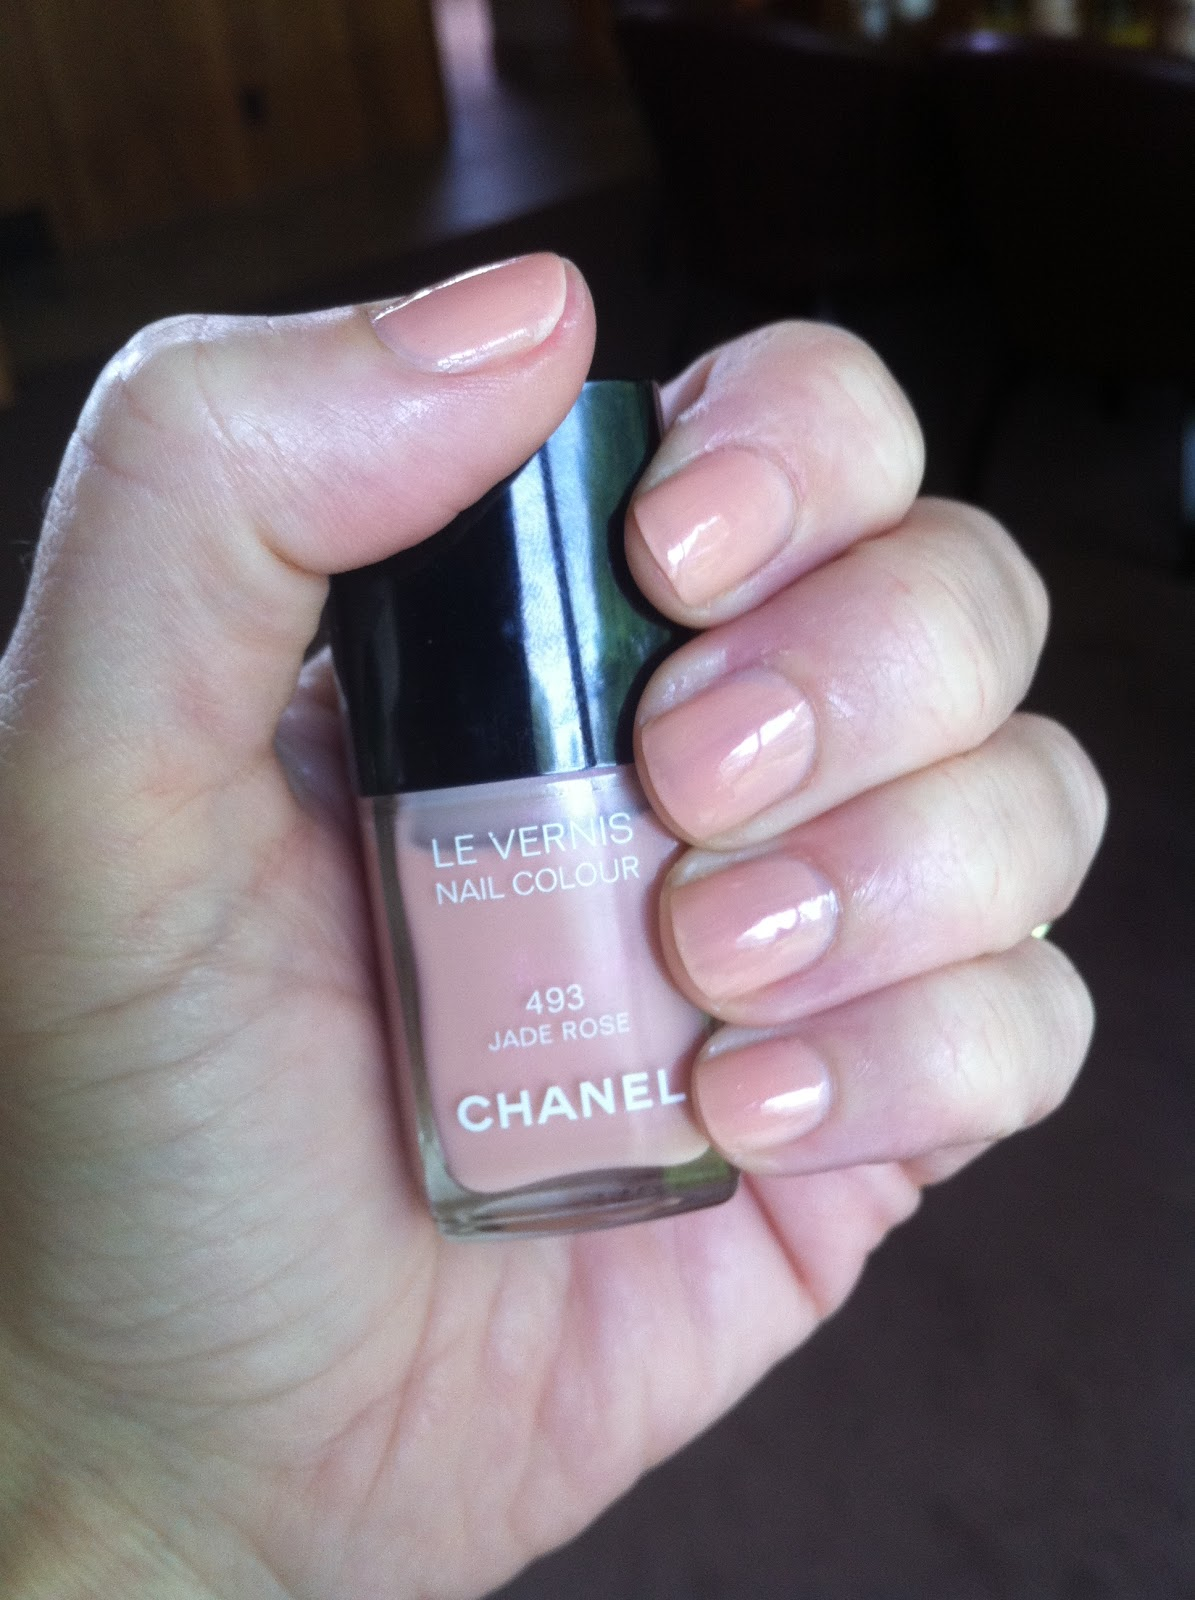 The Beautiful Chanel Jade Rose Nail Polish | Daly Beauty